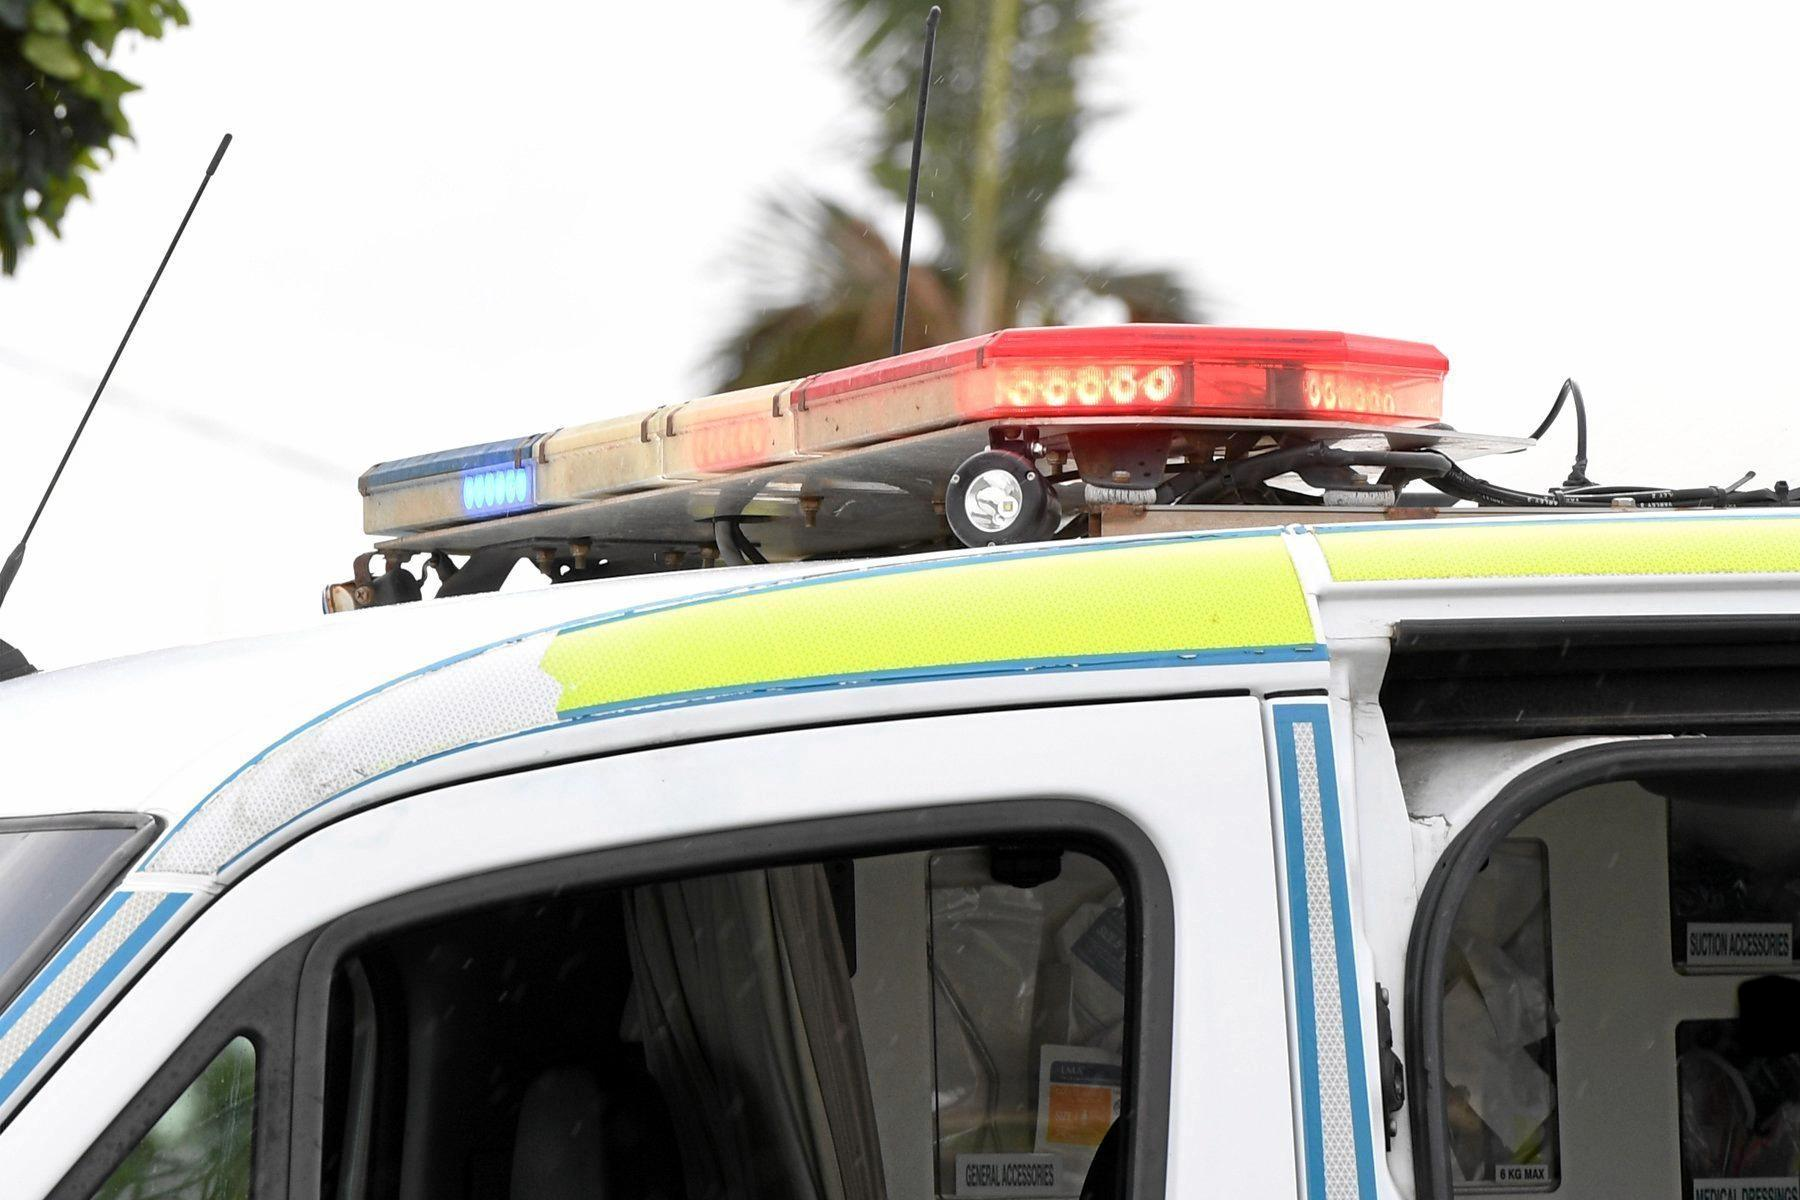 A man in his 50s has died in a motorbike accident outside Stanthorpe.